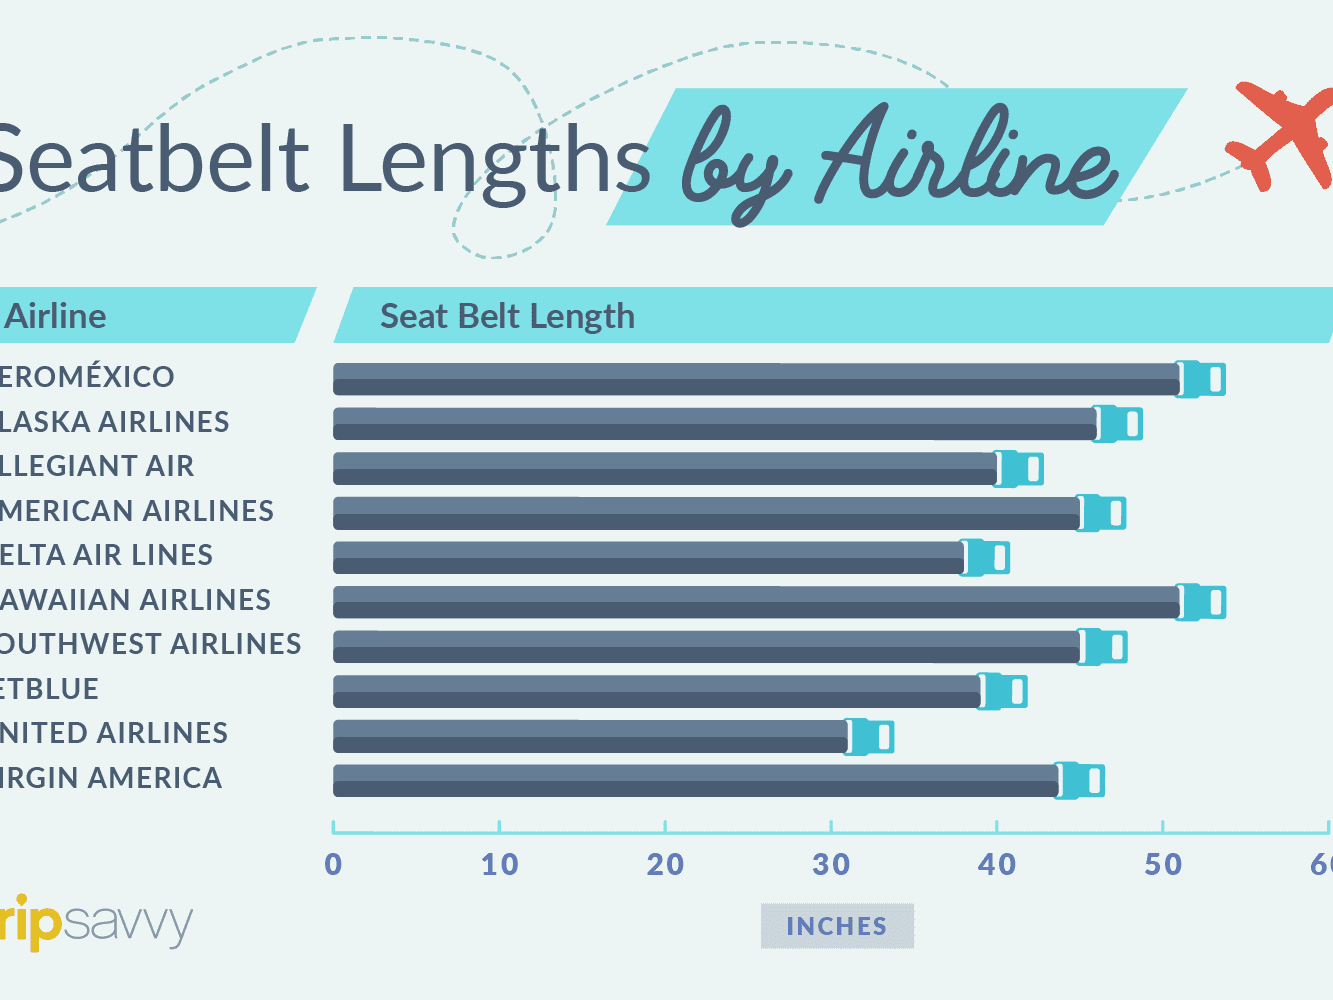 Airline-by-Airline Guide to Seatbelt Length